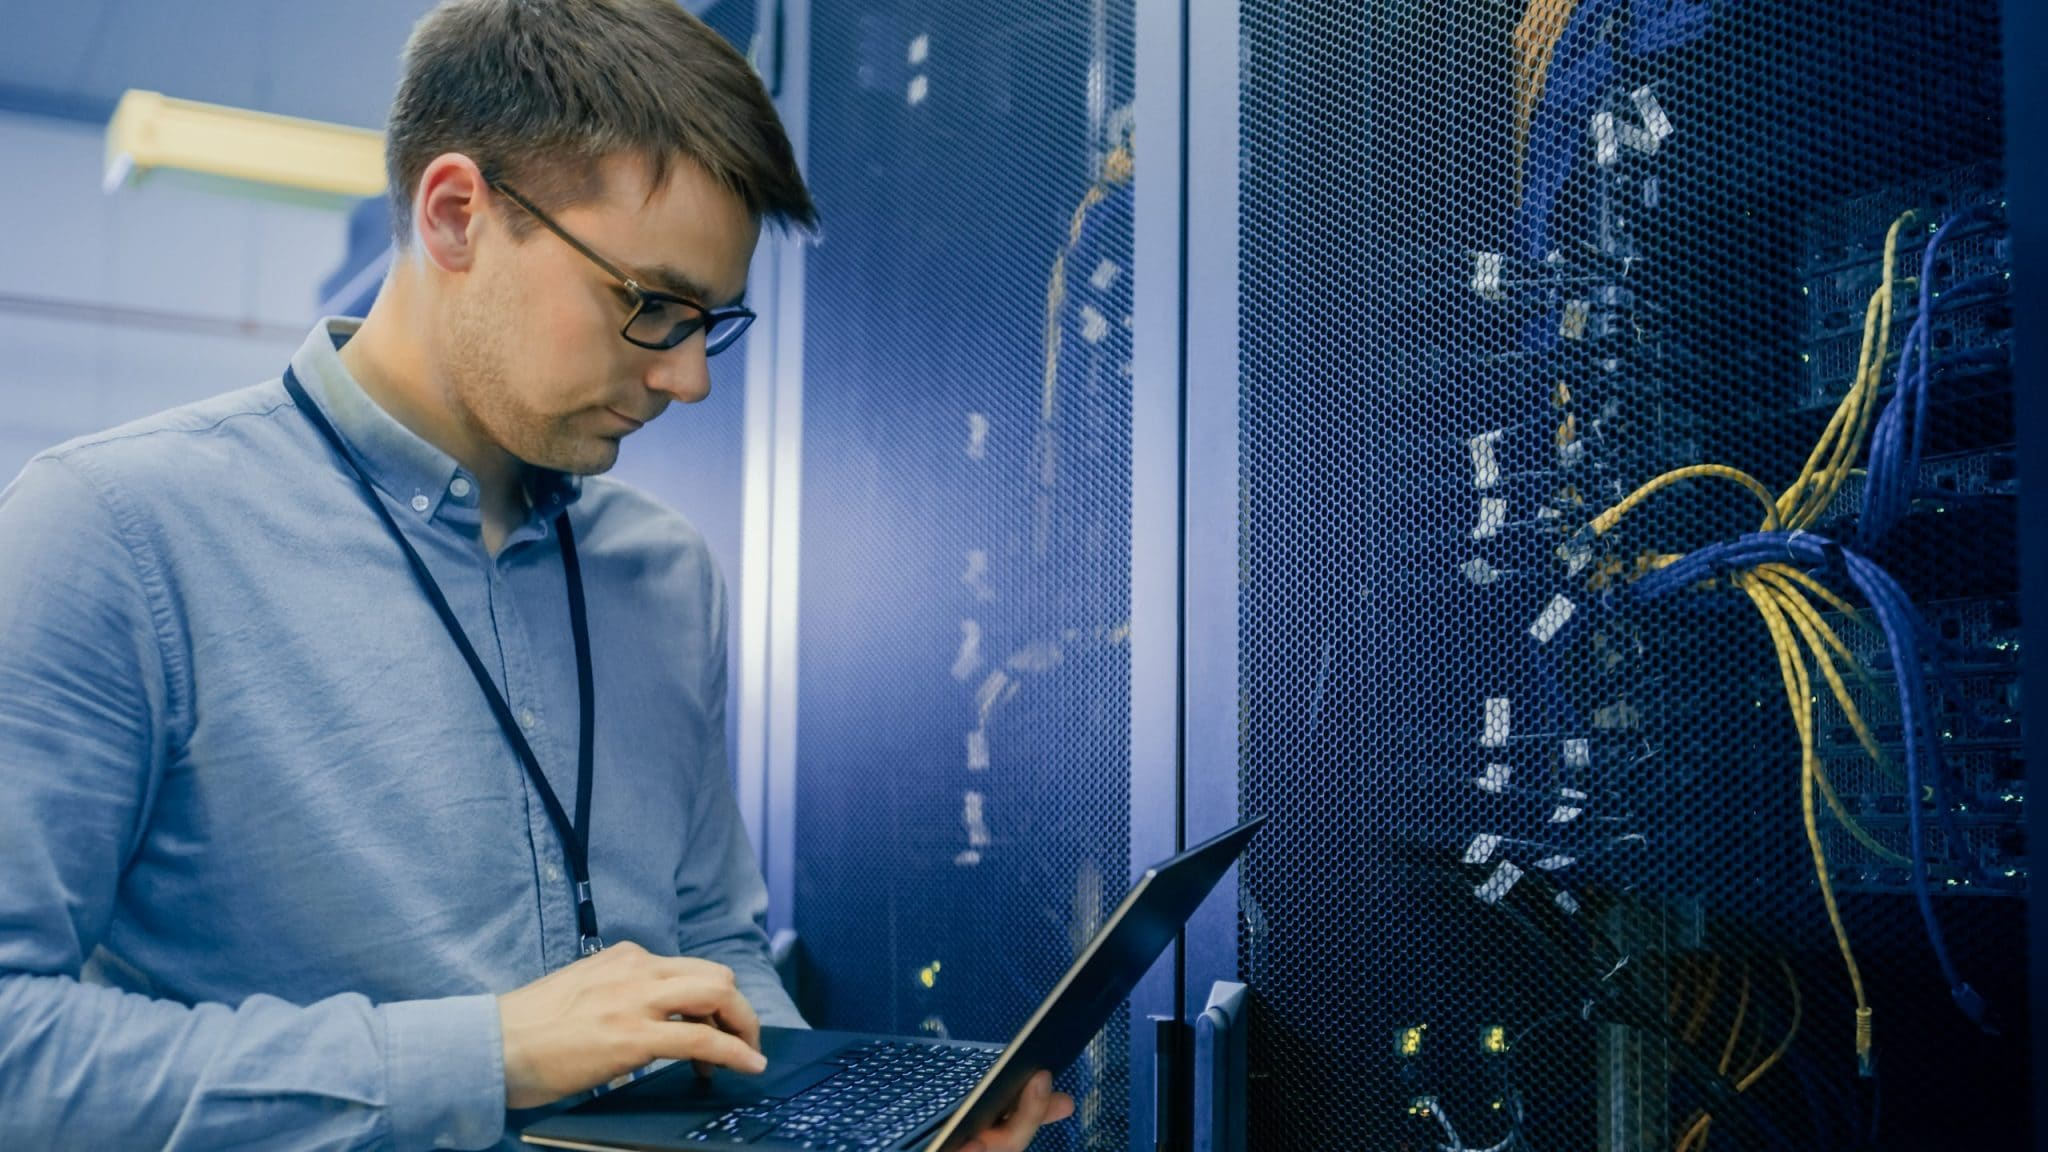 Managed Services - Network Management